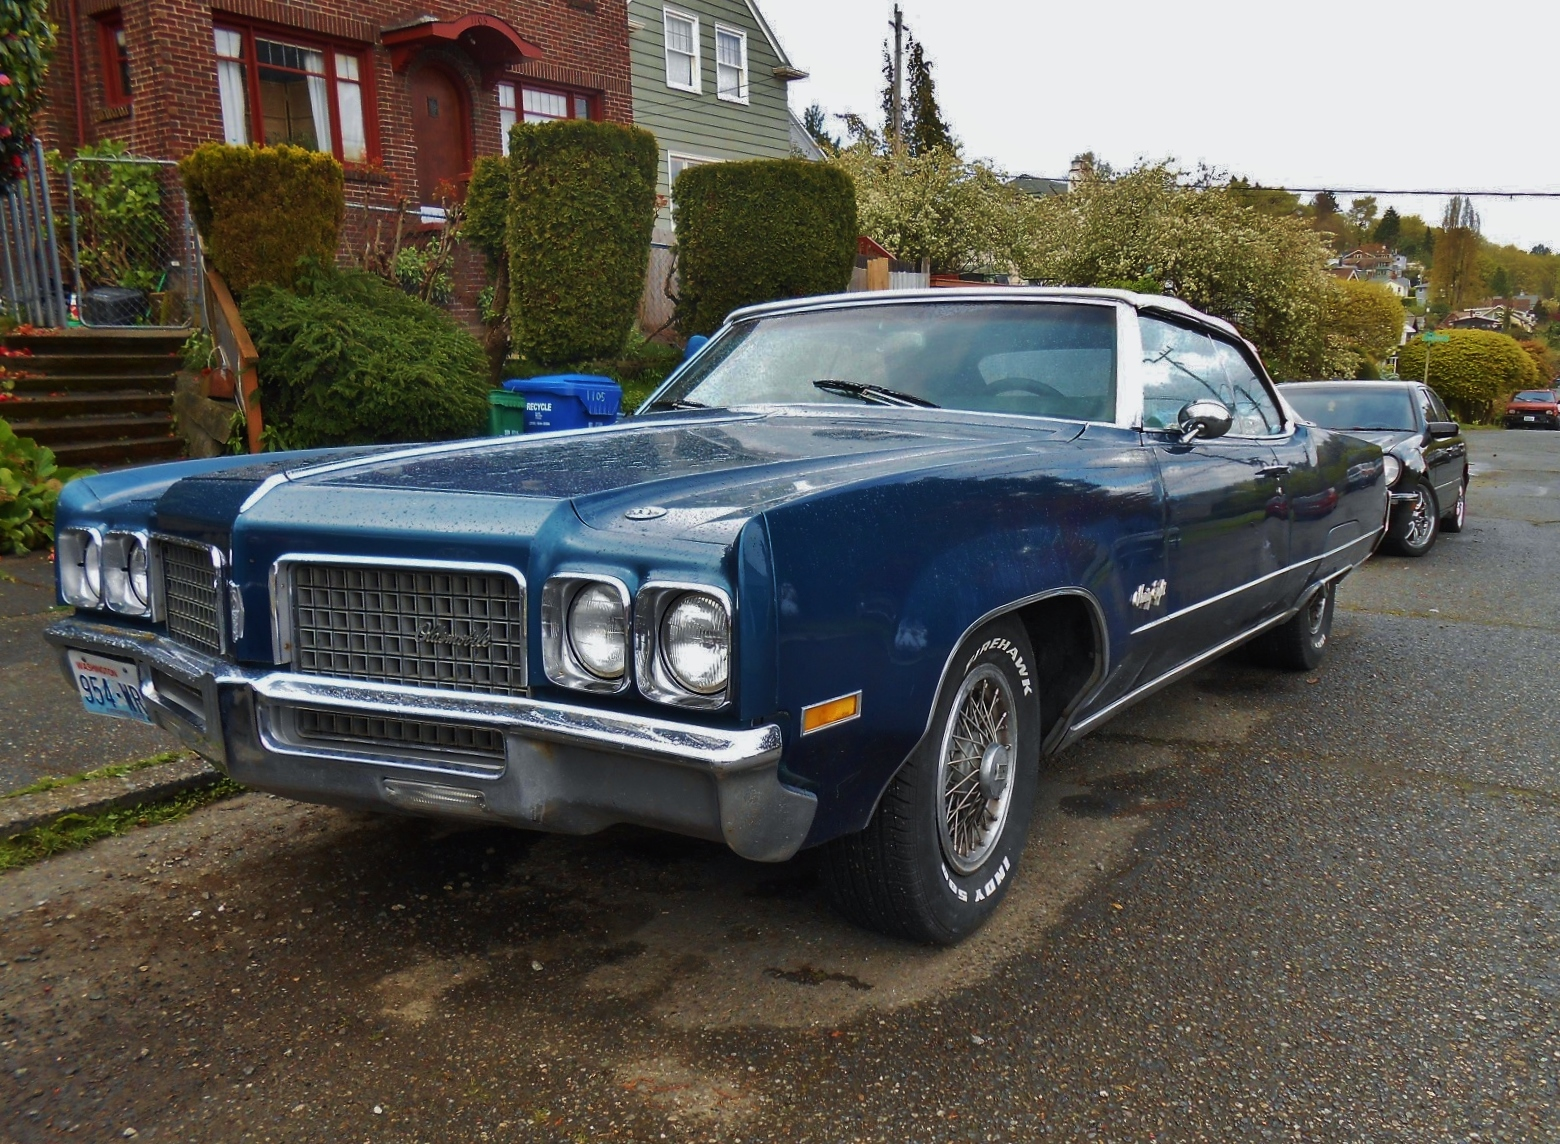 Oldsmobile Cars: Seattle's Parked Cars: 1970 Oldsmobile 98 Convertible